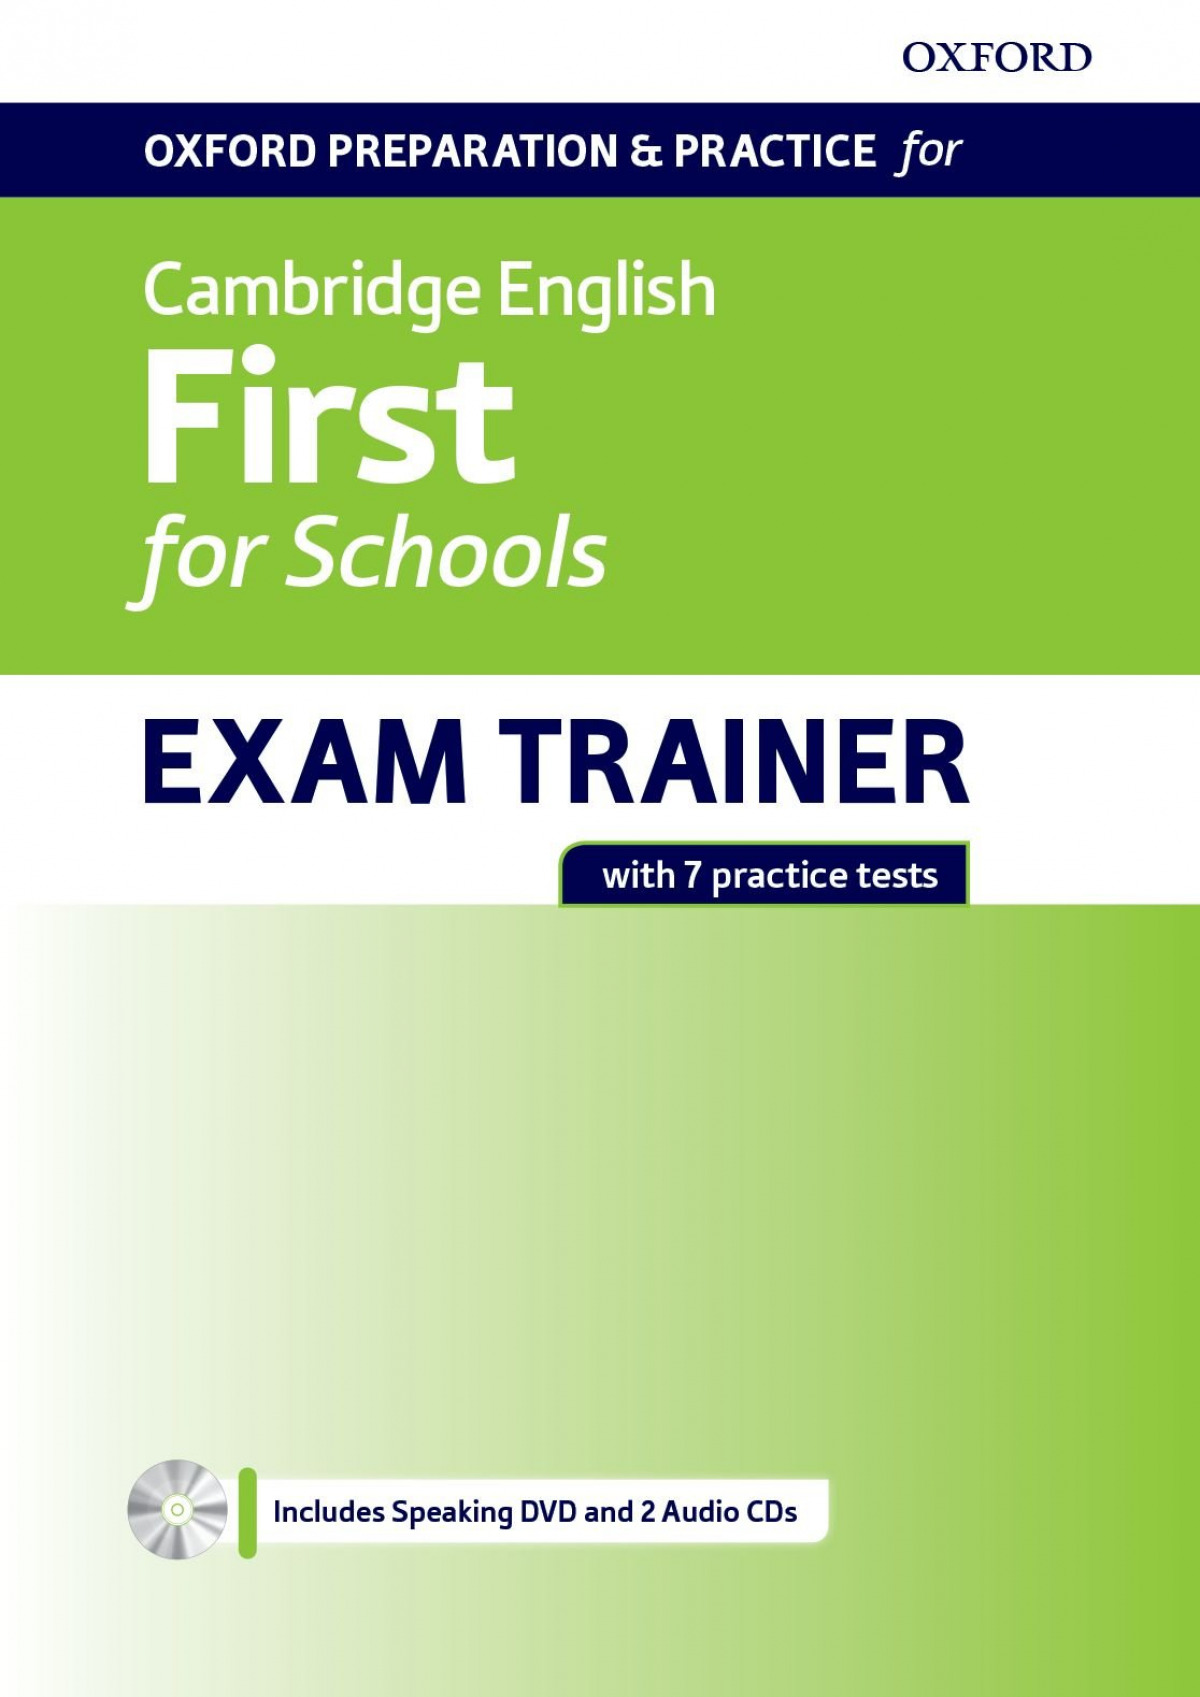 (17).(ST-KEY).ENG.FIRST FOR SCHOOLS EXAM TRAINER (OX.PREP)